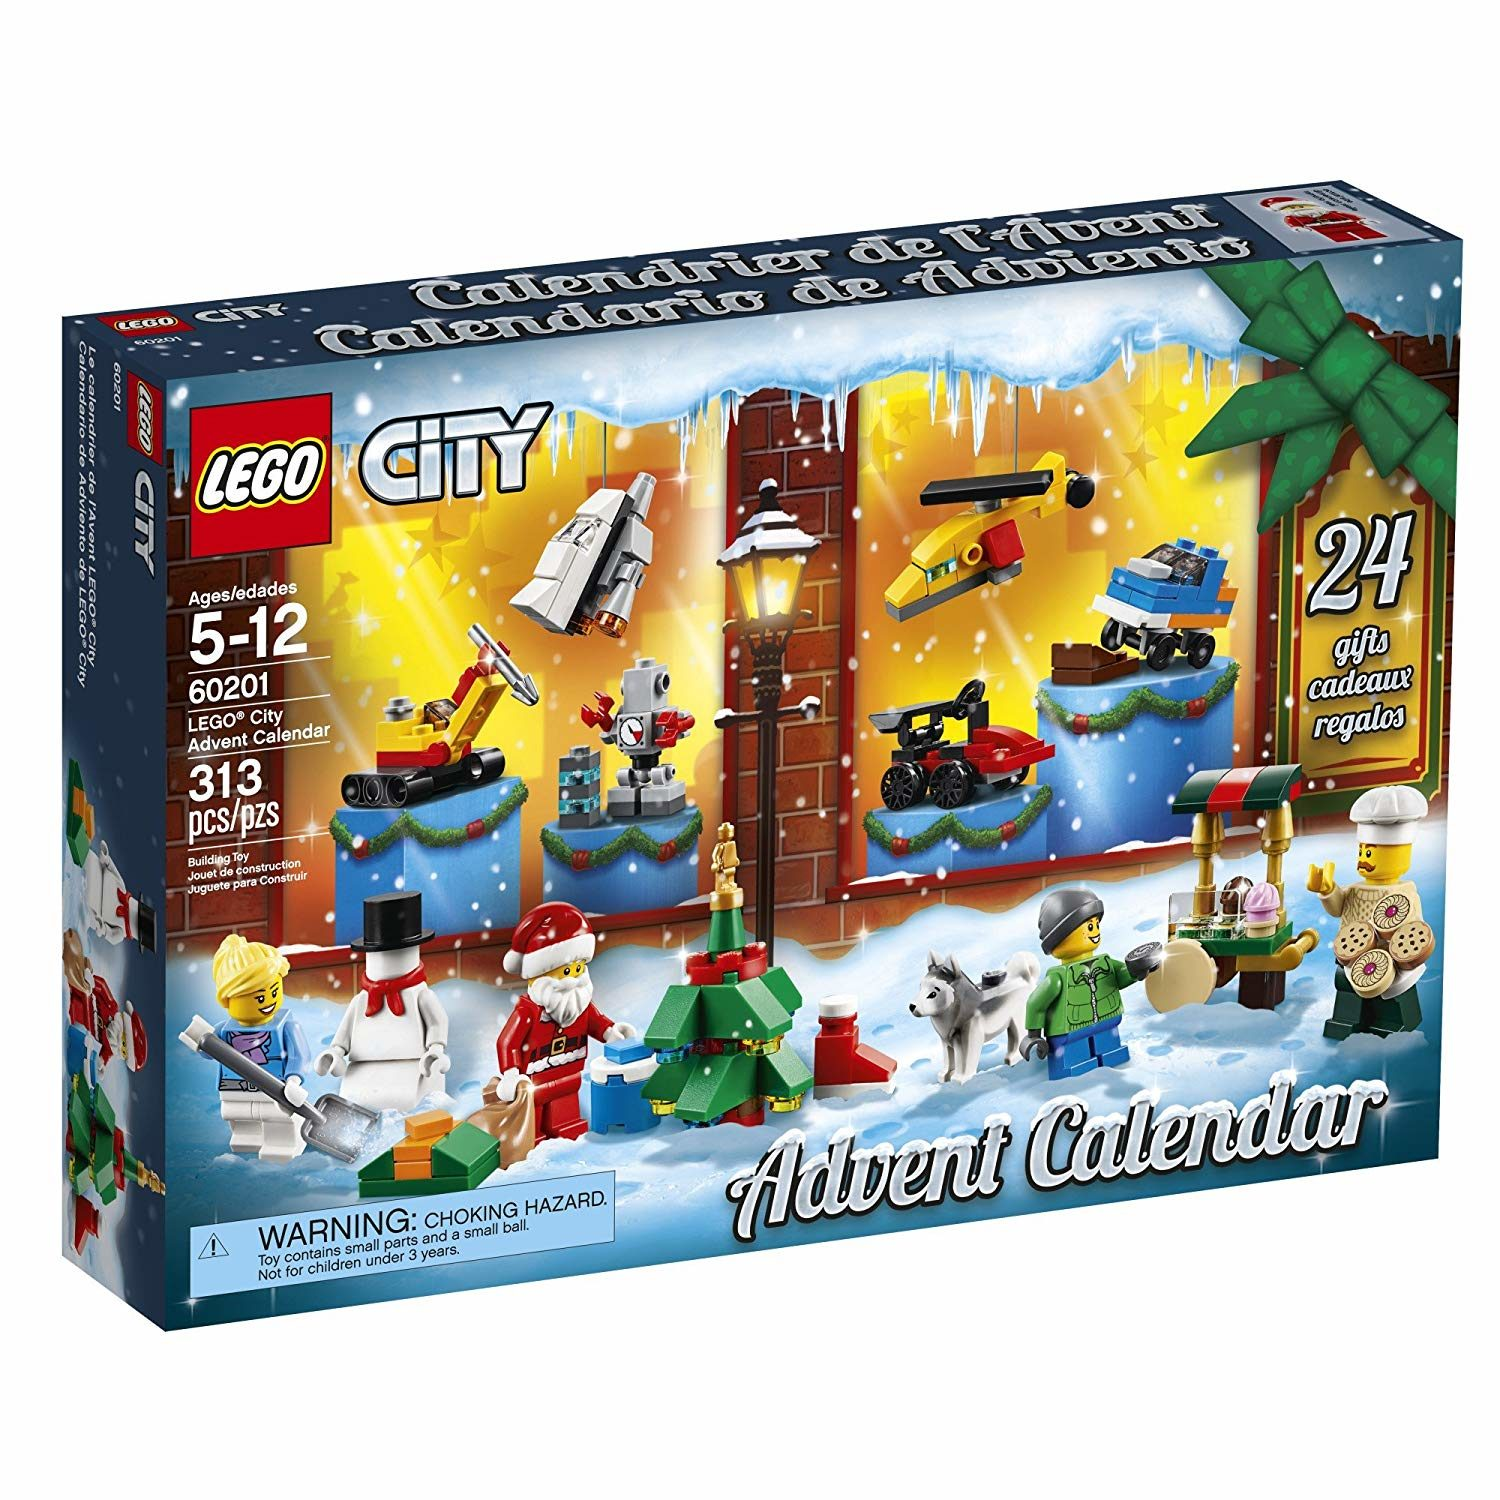 Lego Holiday Gift Guide 2018 Ps4 Tekken 7 Region 3 Bonus Toys Advent Calendars 3999 4999 Shop Amazon